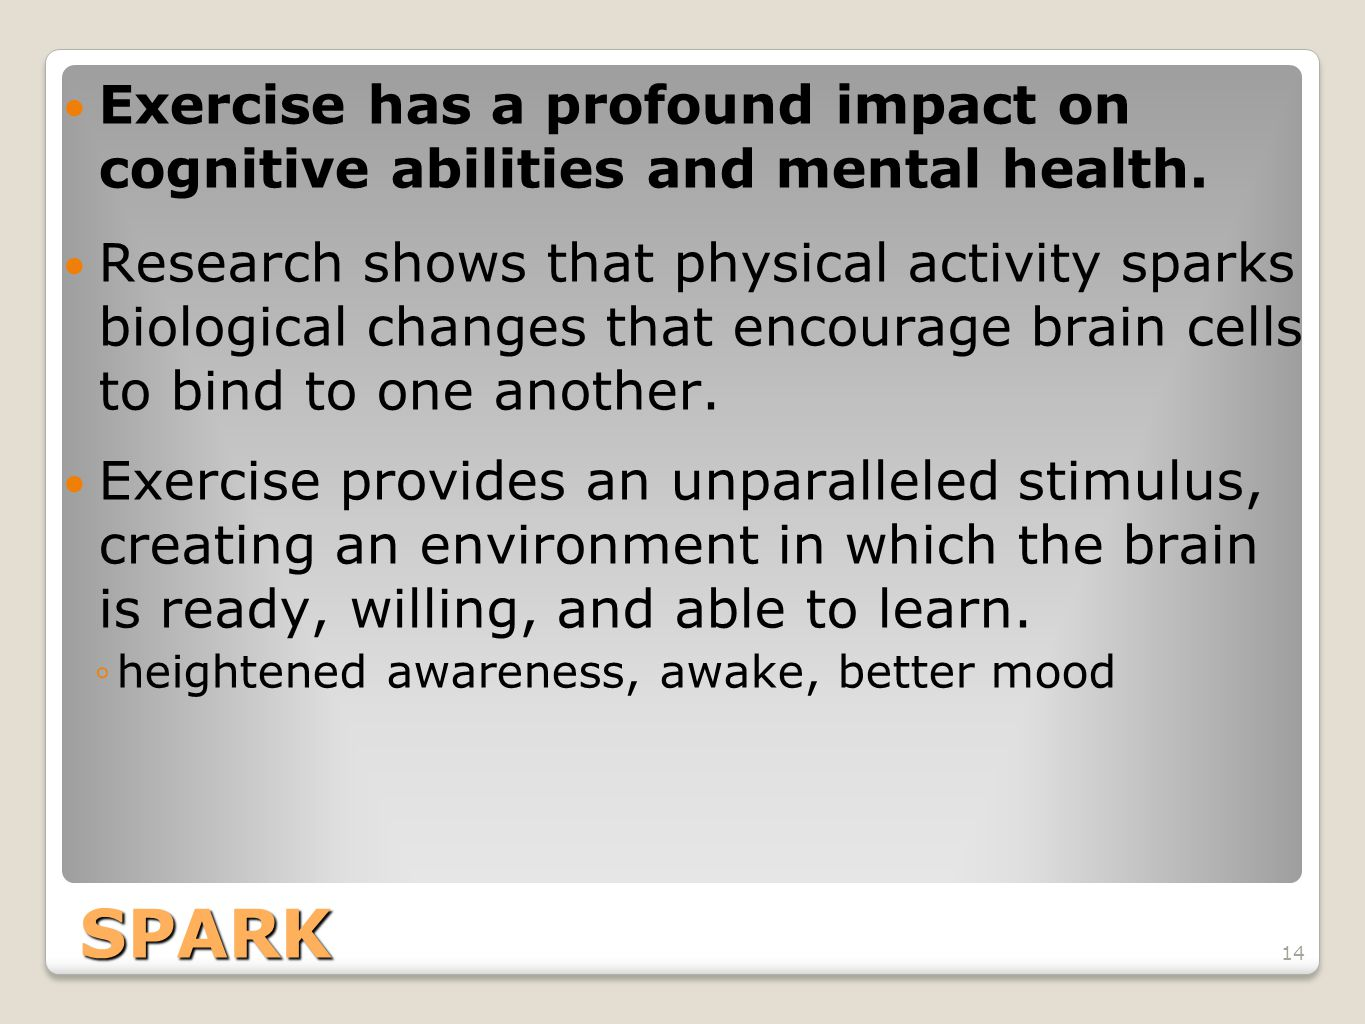 Exercise has a profound impact on cognitive abilities and mental health.